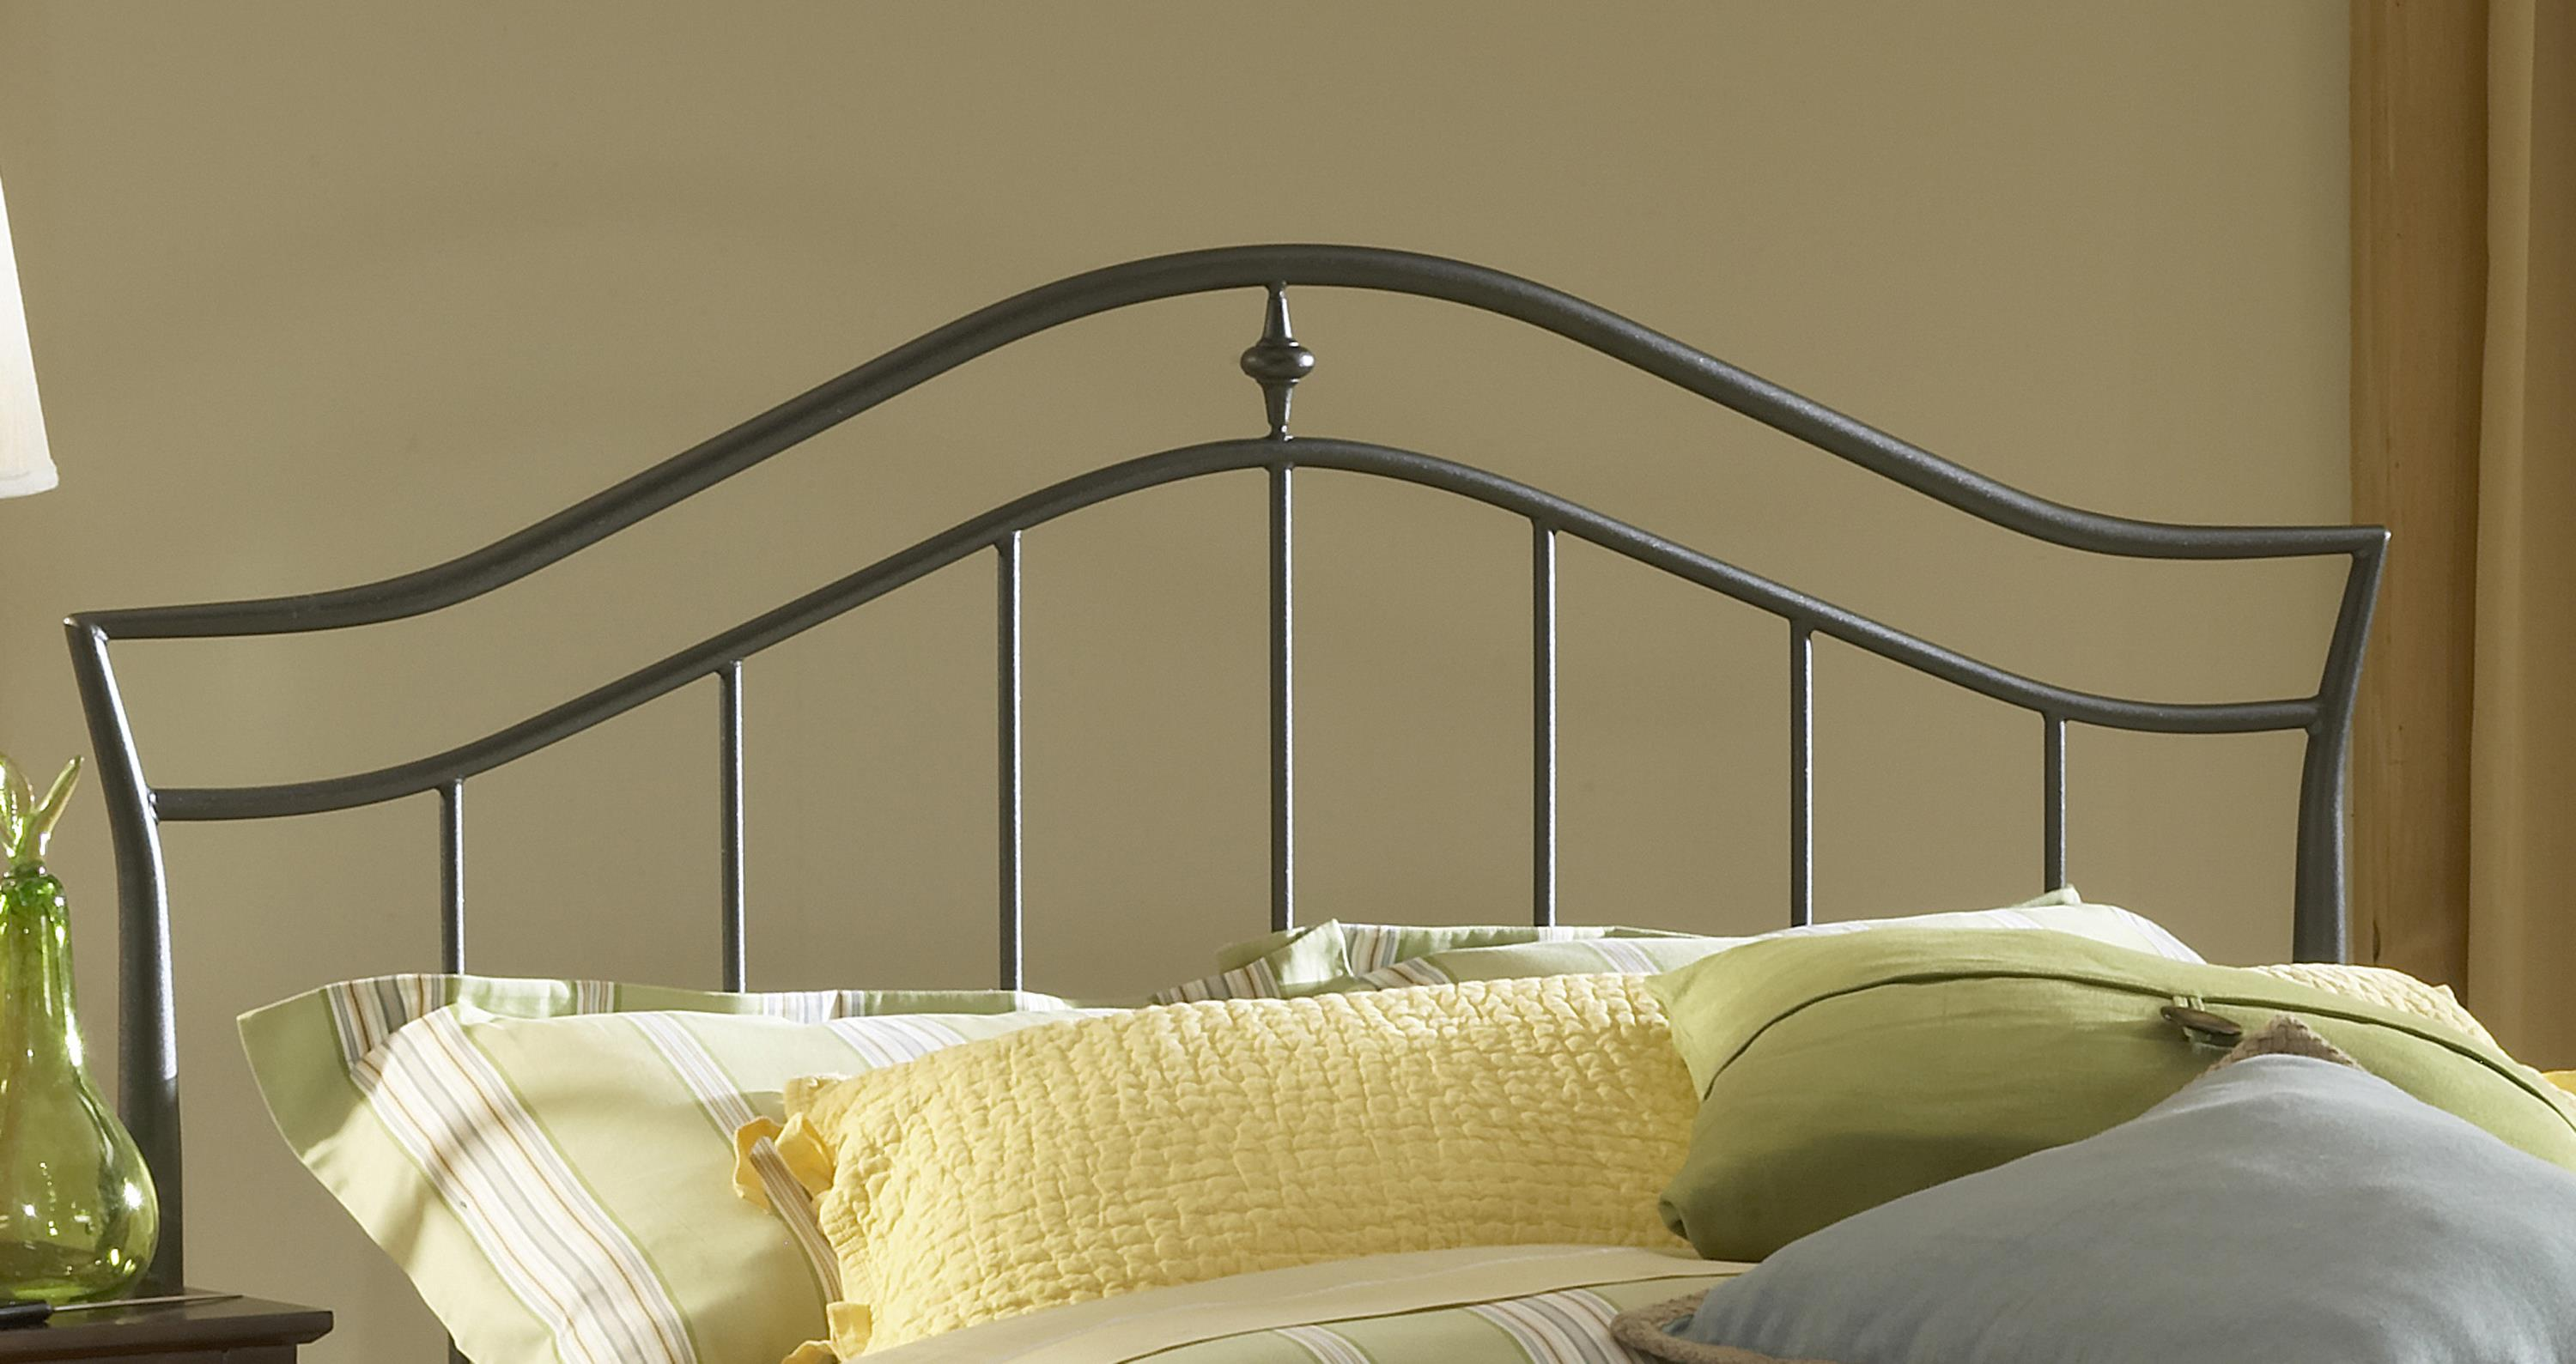 Hillsdale Metal Beds Imperial King Headboard with Rails - Item Number: 1546HKR